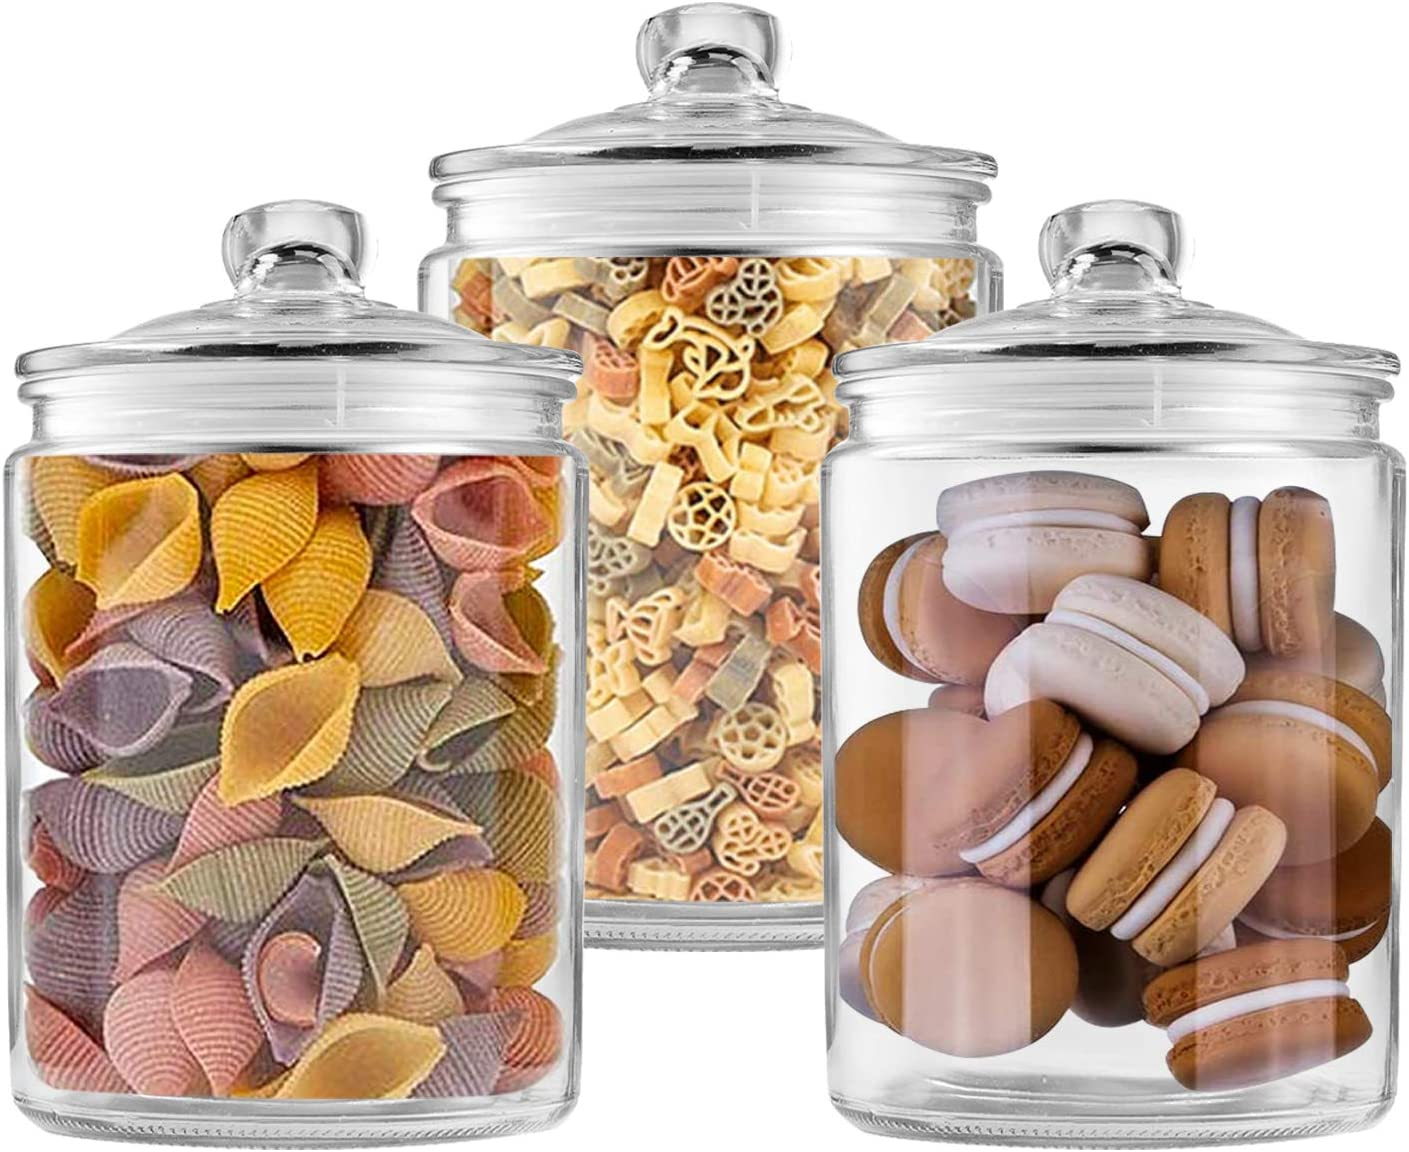 Glass Jars 64 oz,Candy Jar with Lid For Household,Food Grade Clear Jars (3 Pack)